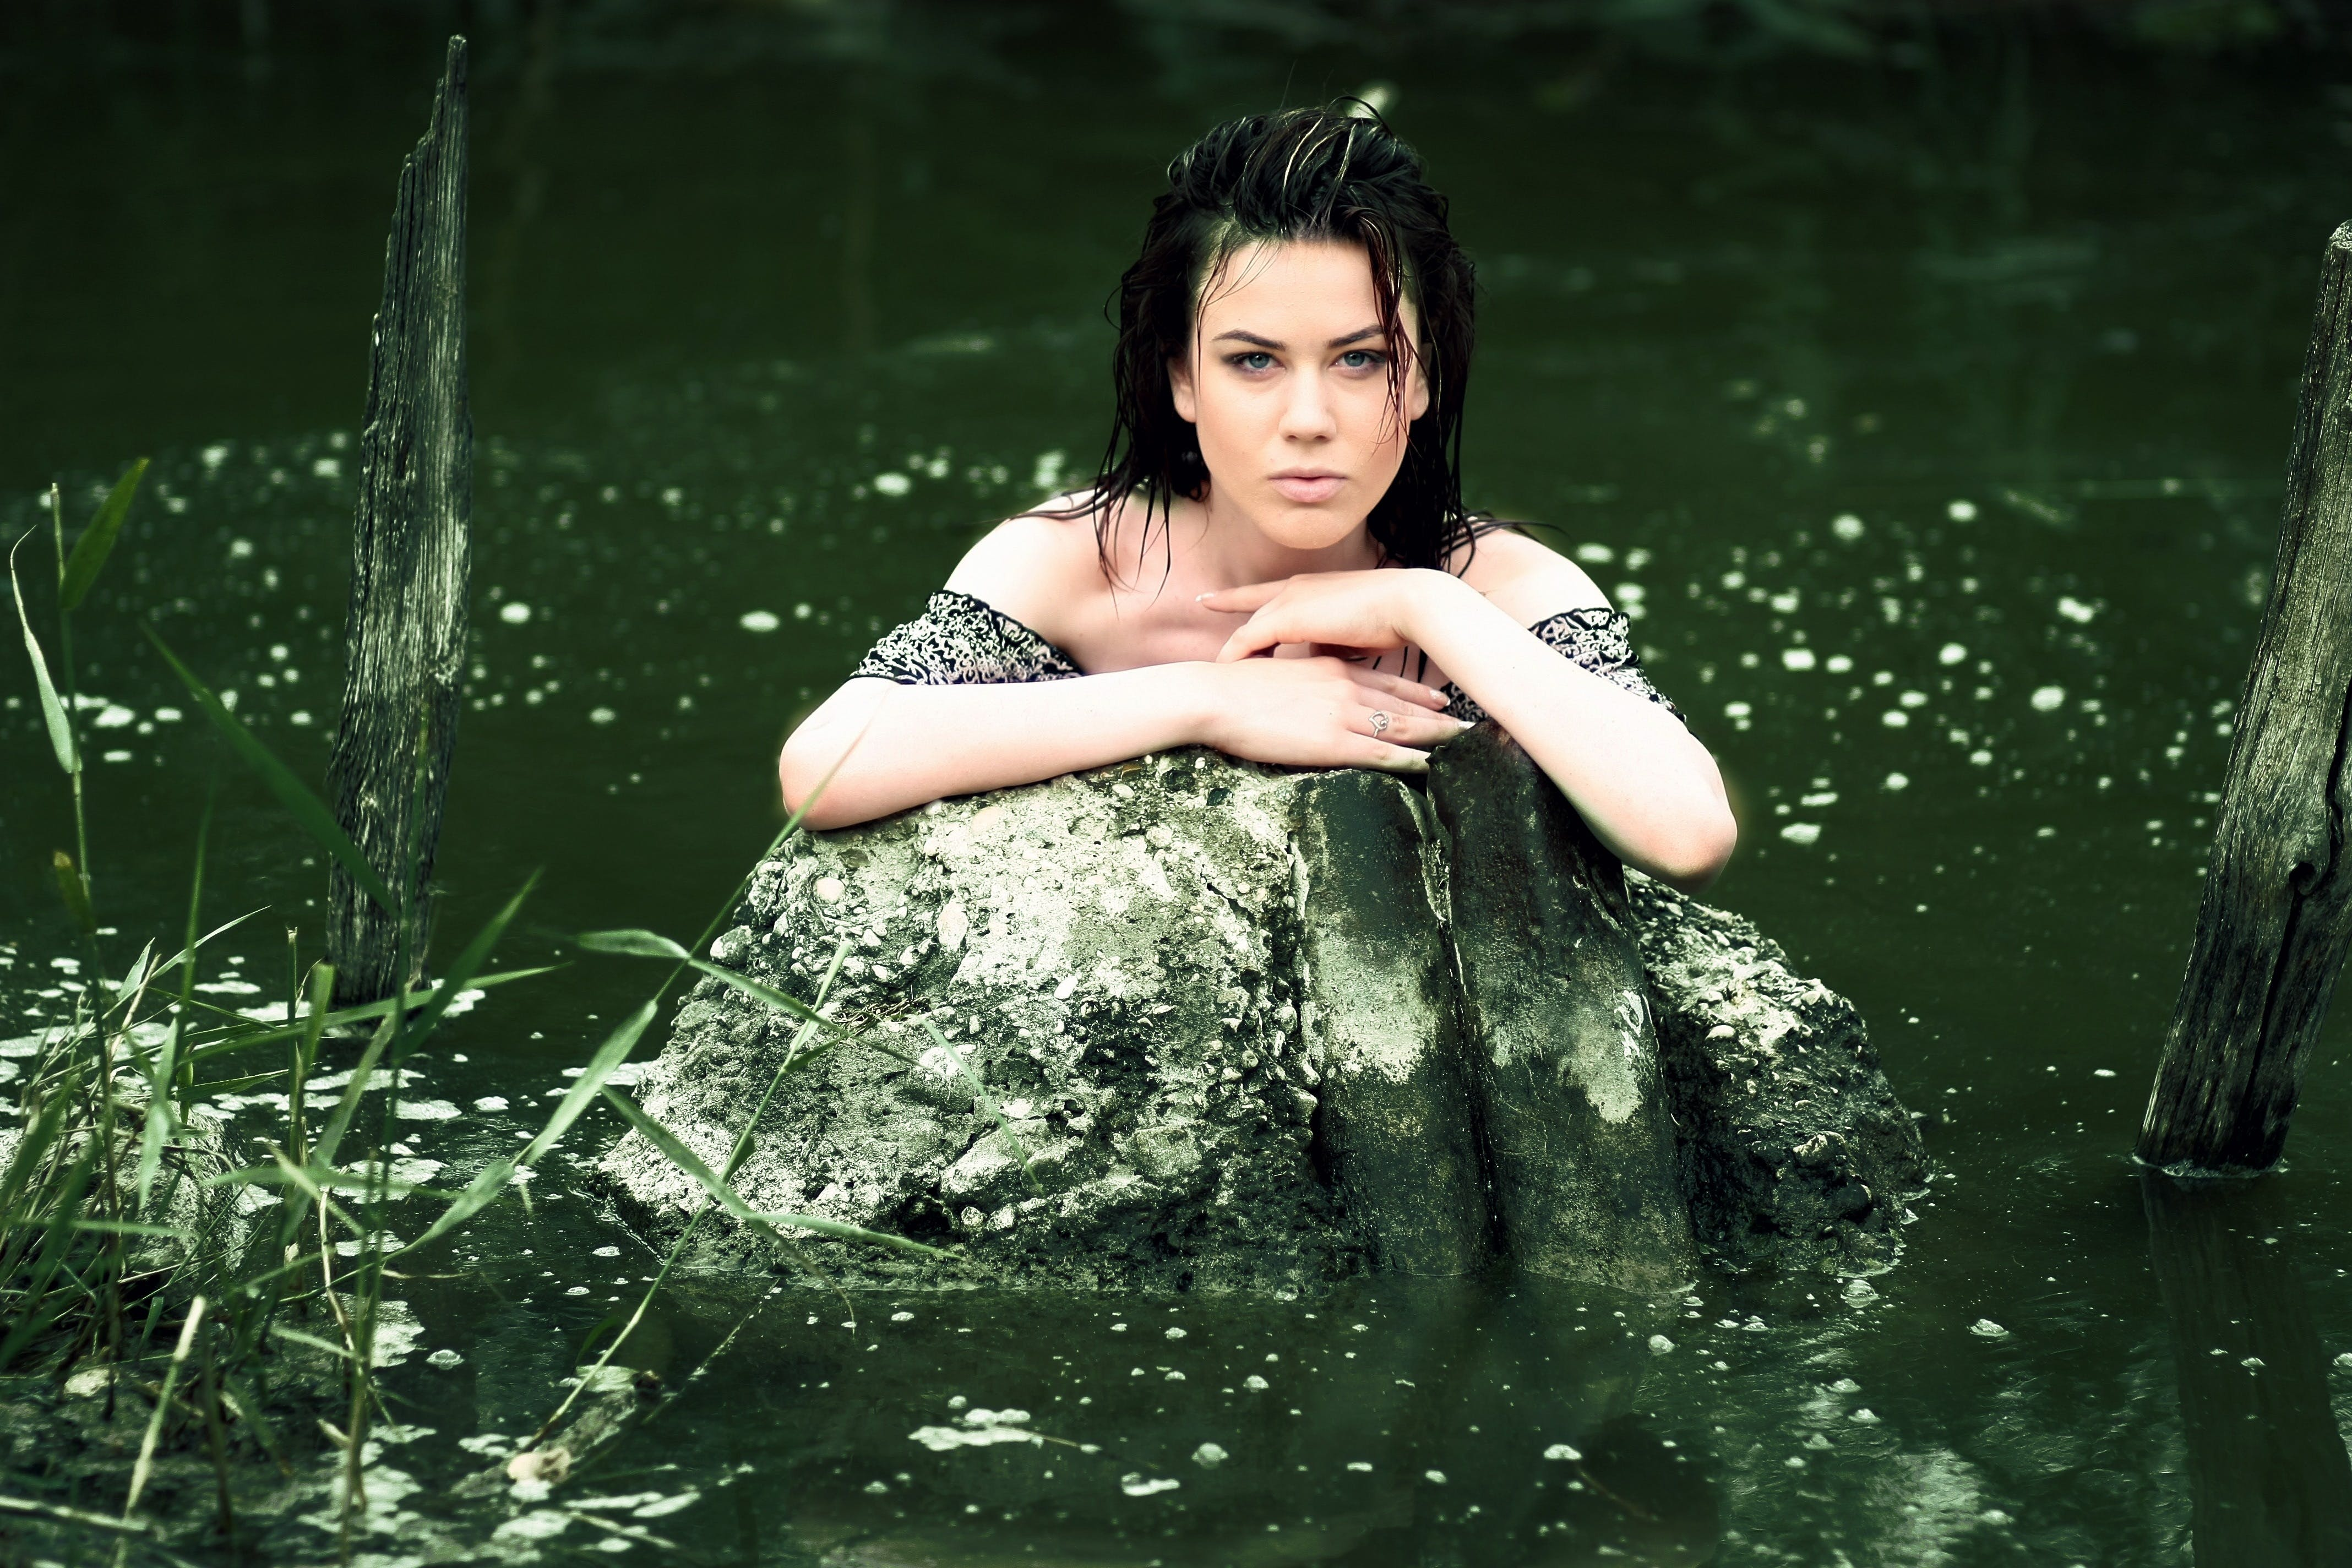 Woman in Grey Shirt in the Water and Leaning Hands on Grey Rock